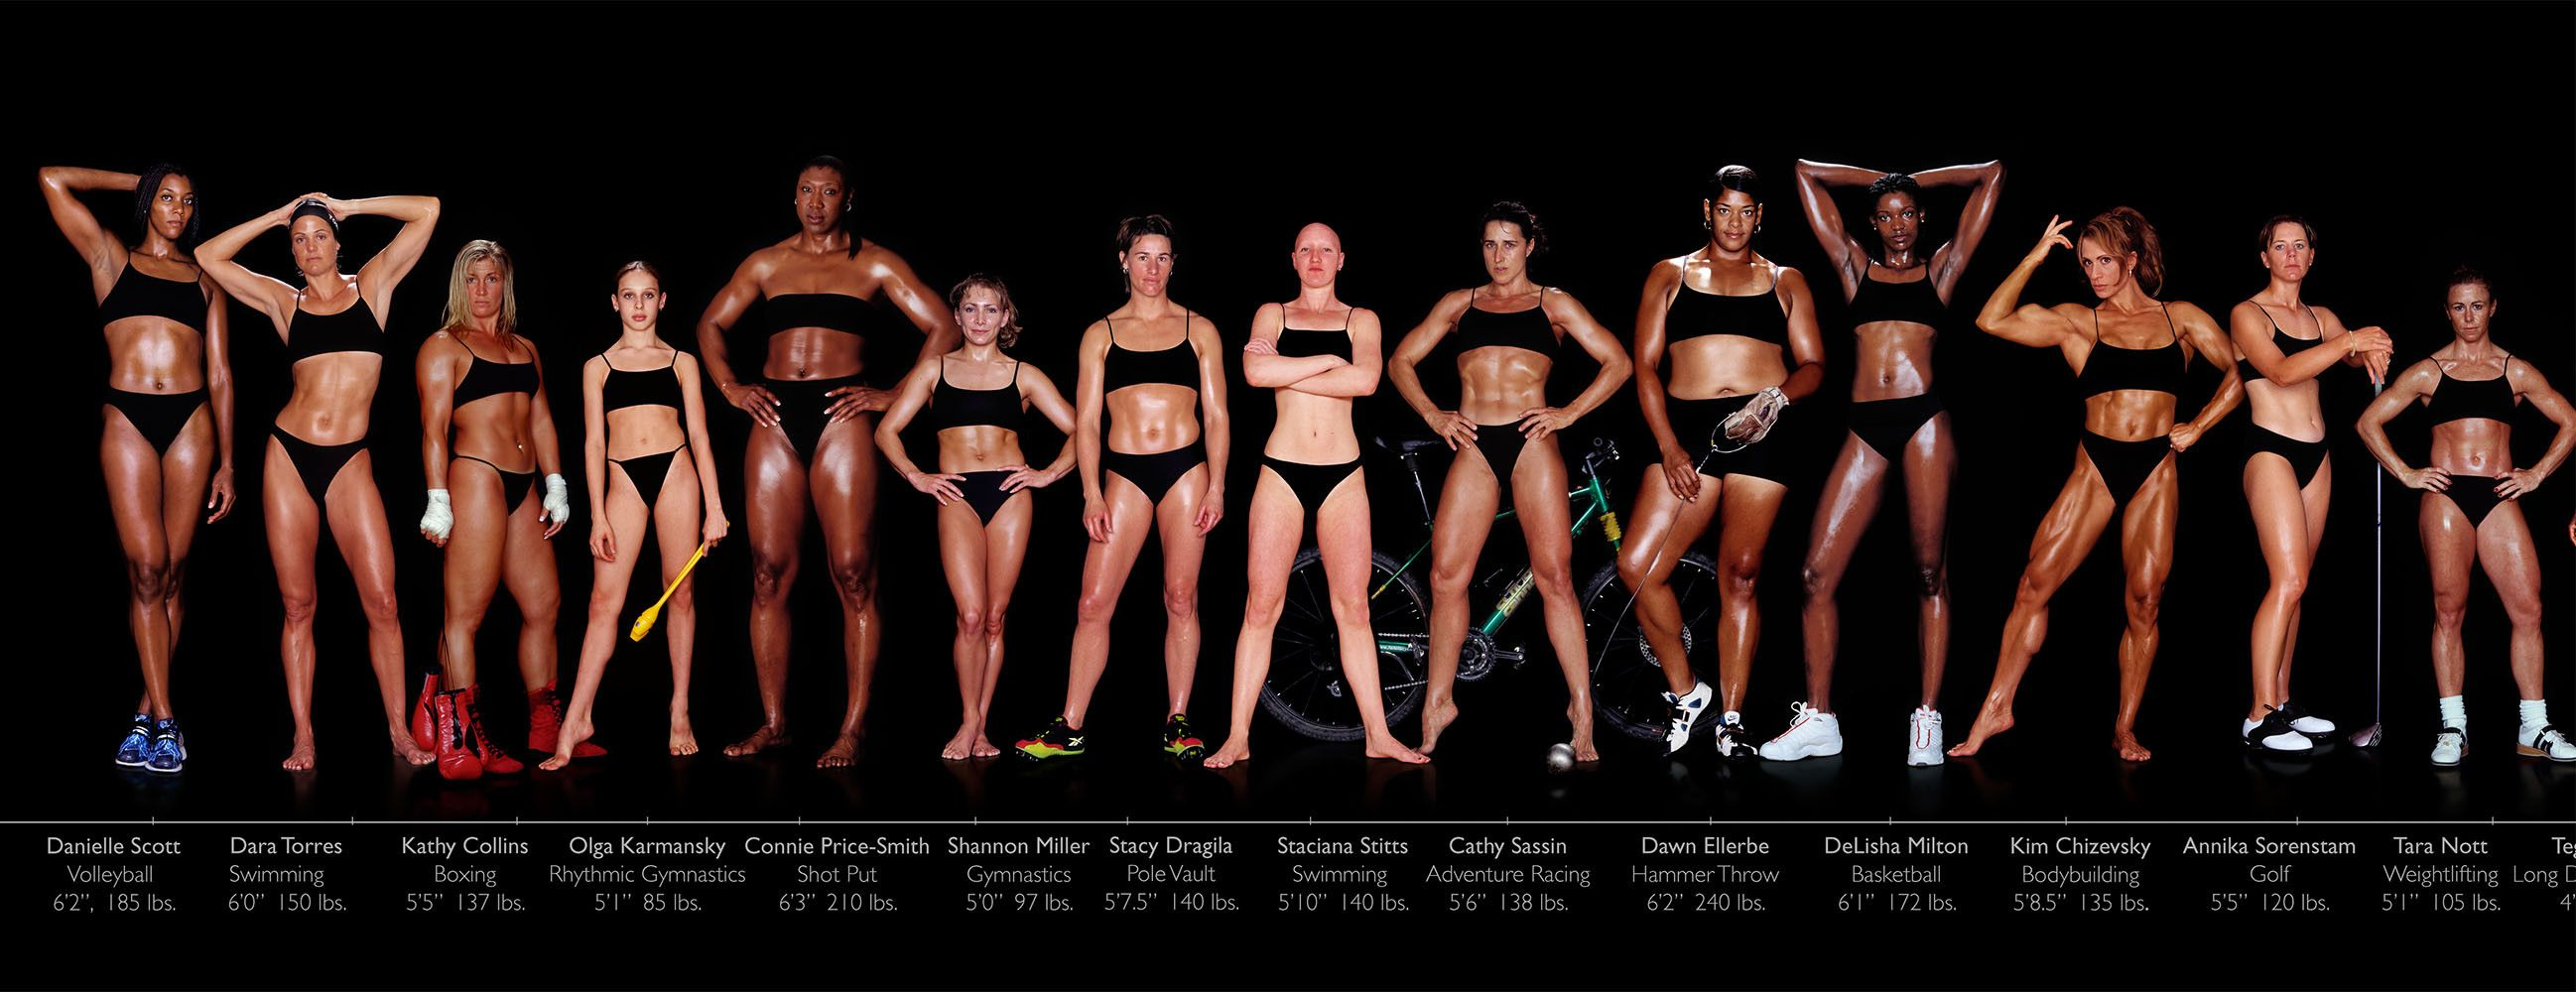 7b7150ae06 photos of female olympic athletes taken by Howard Shatz in 2002. There is  such a diversity of body types.